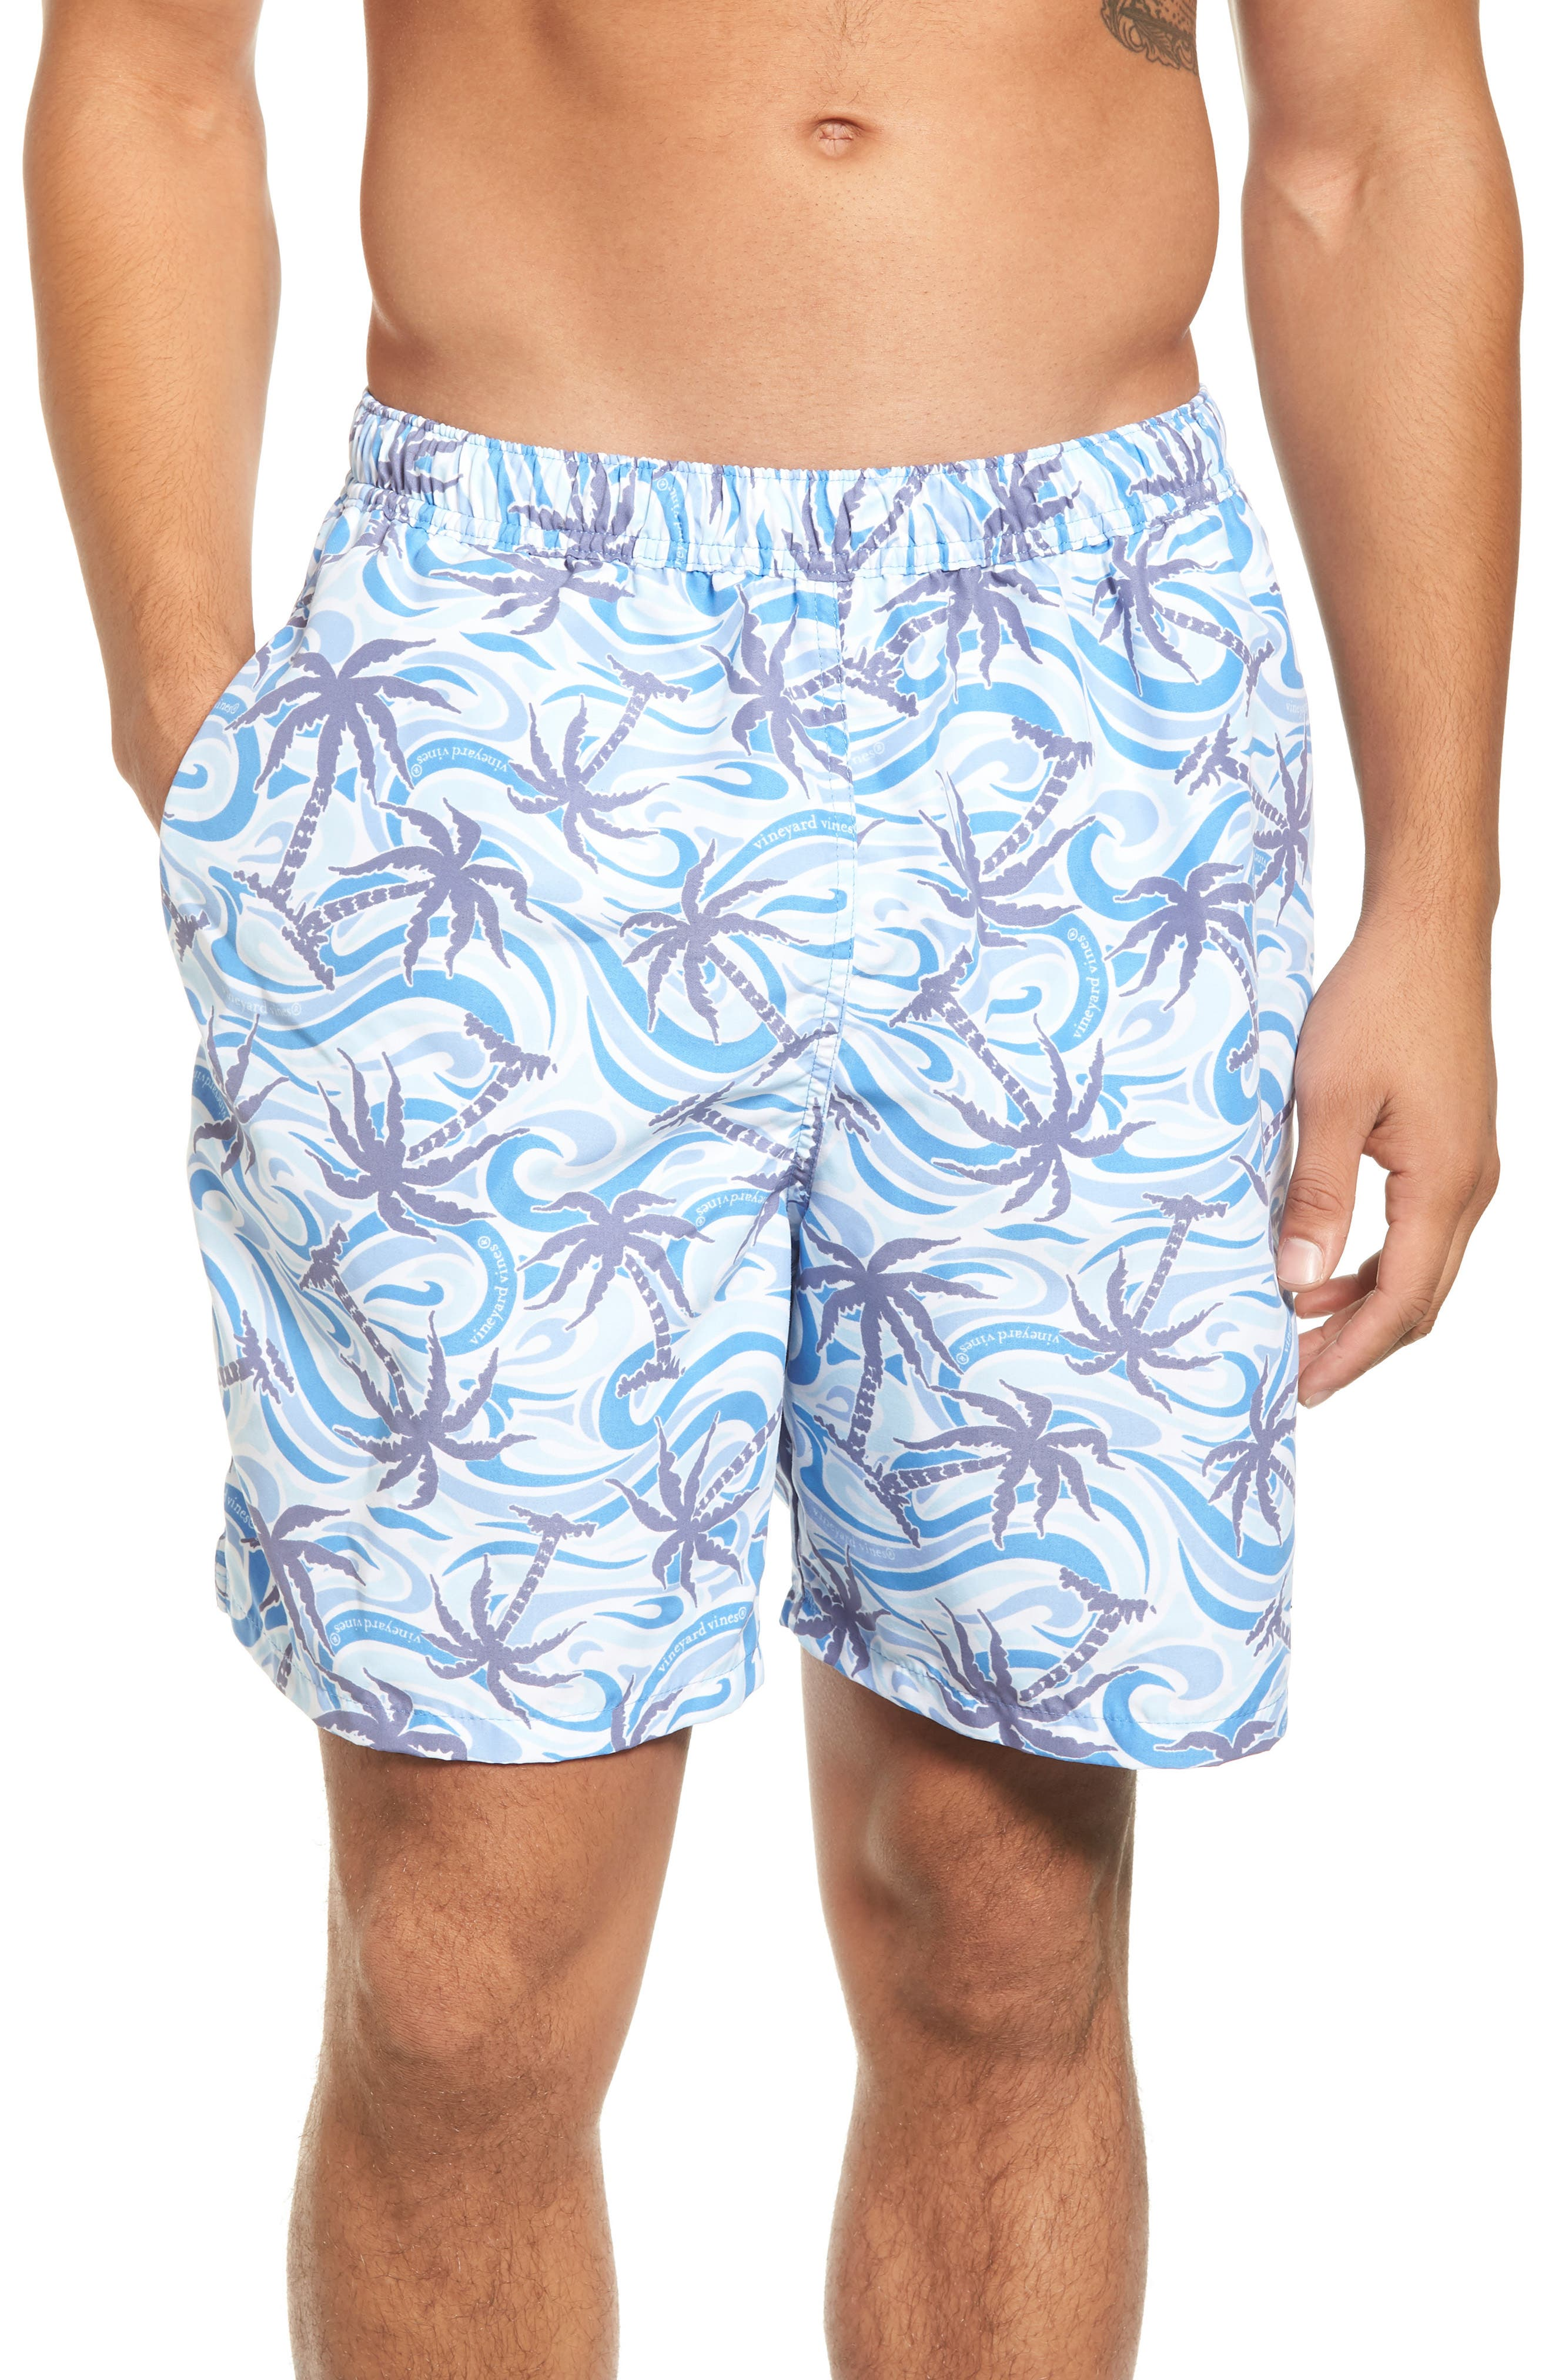 Alternate Image 1 Selected - vineyard vines Chappy Wave Palm Tree Swim Trunks